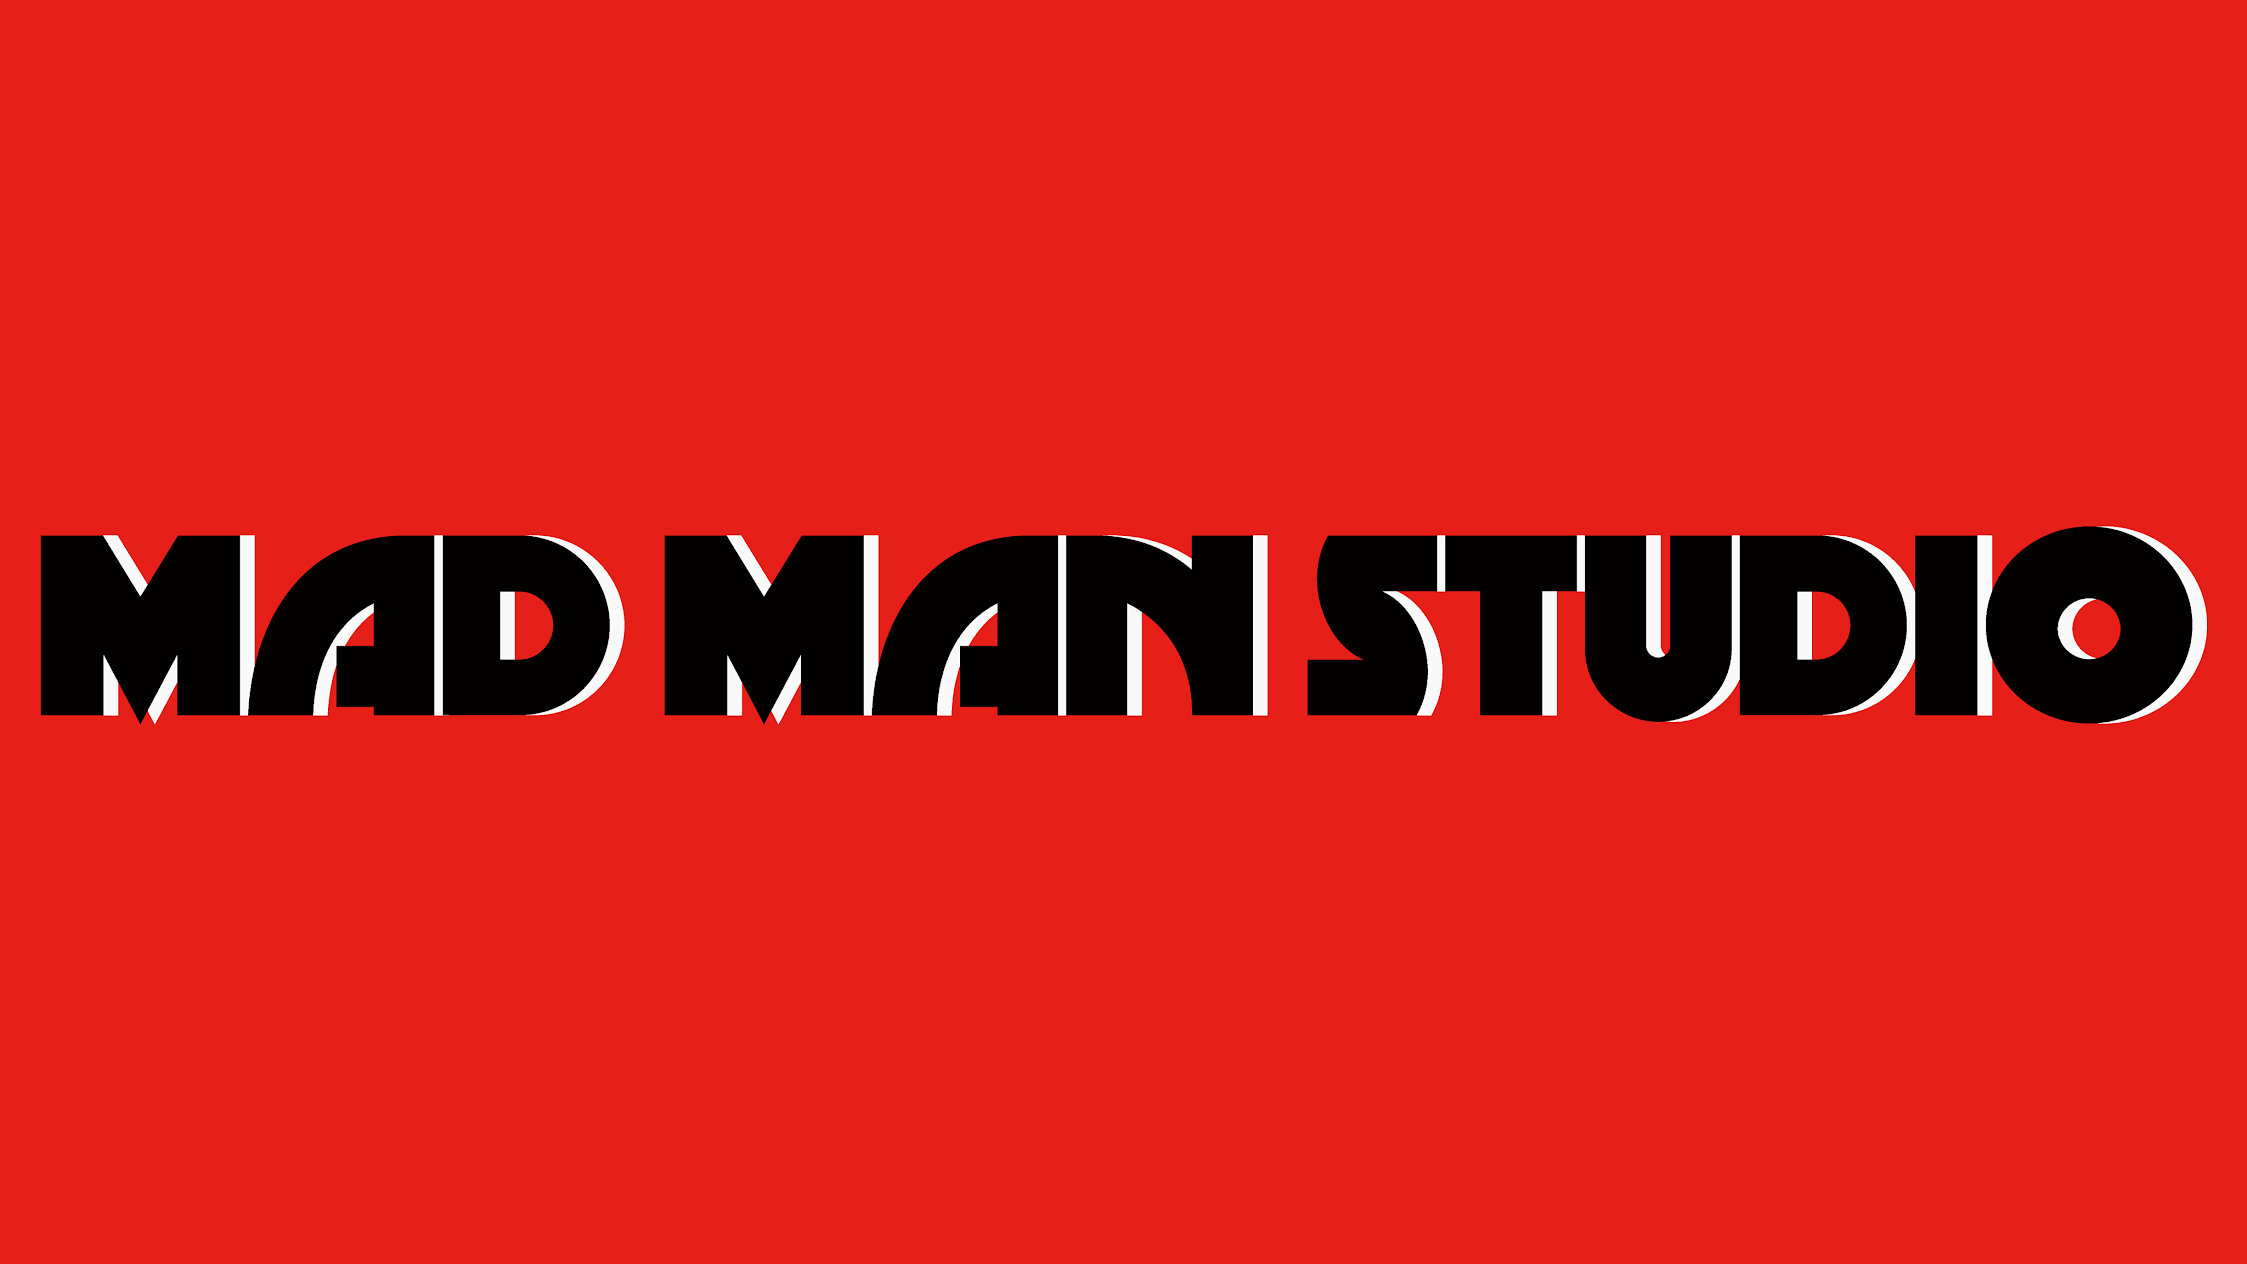 MAD MAN STUDIO